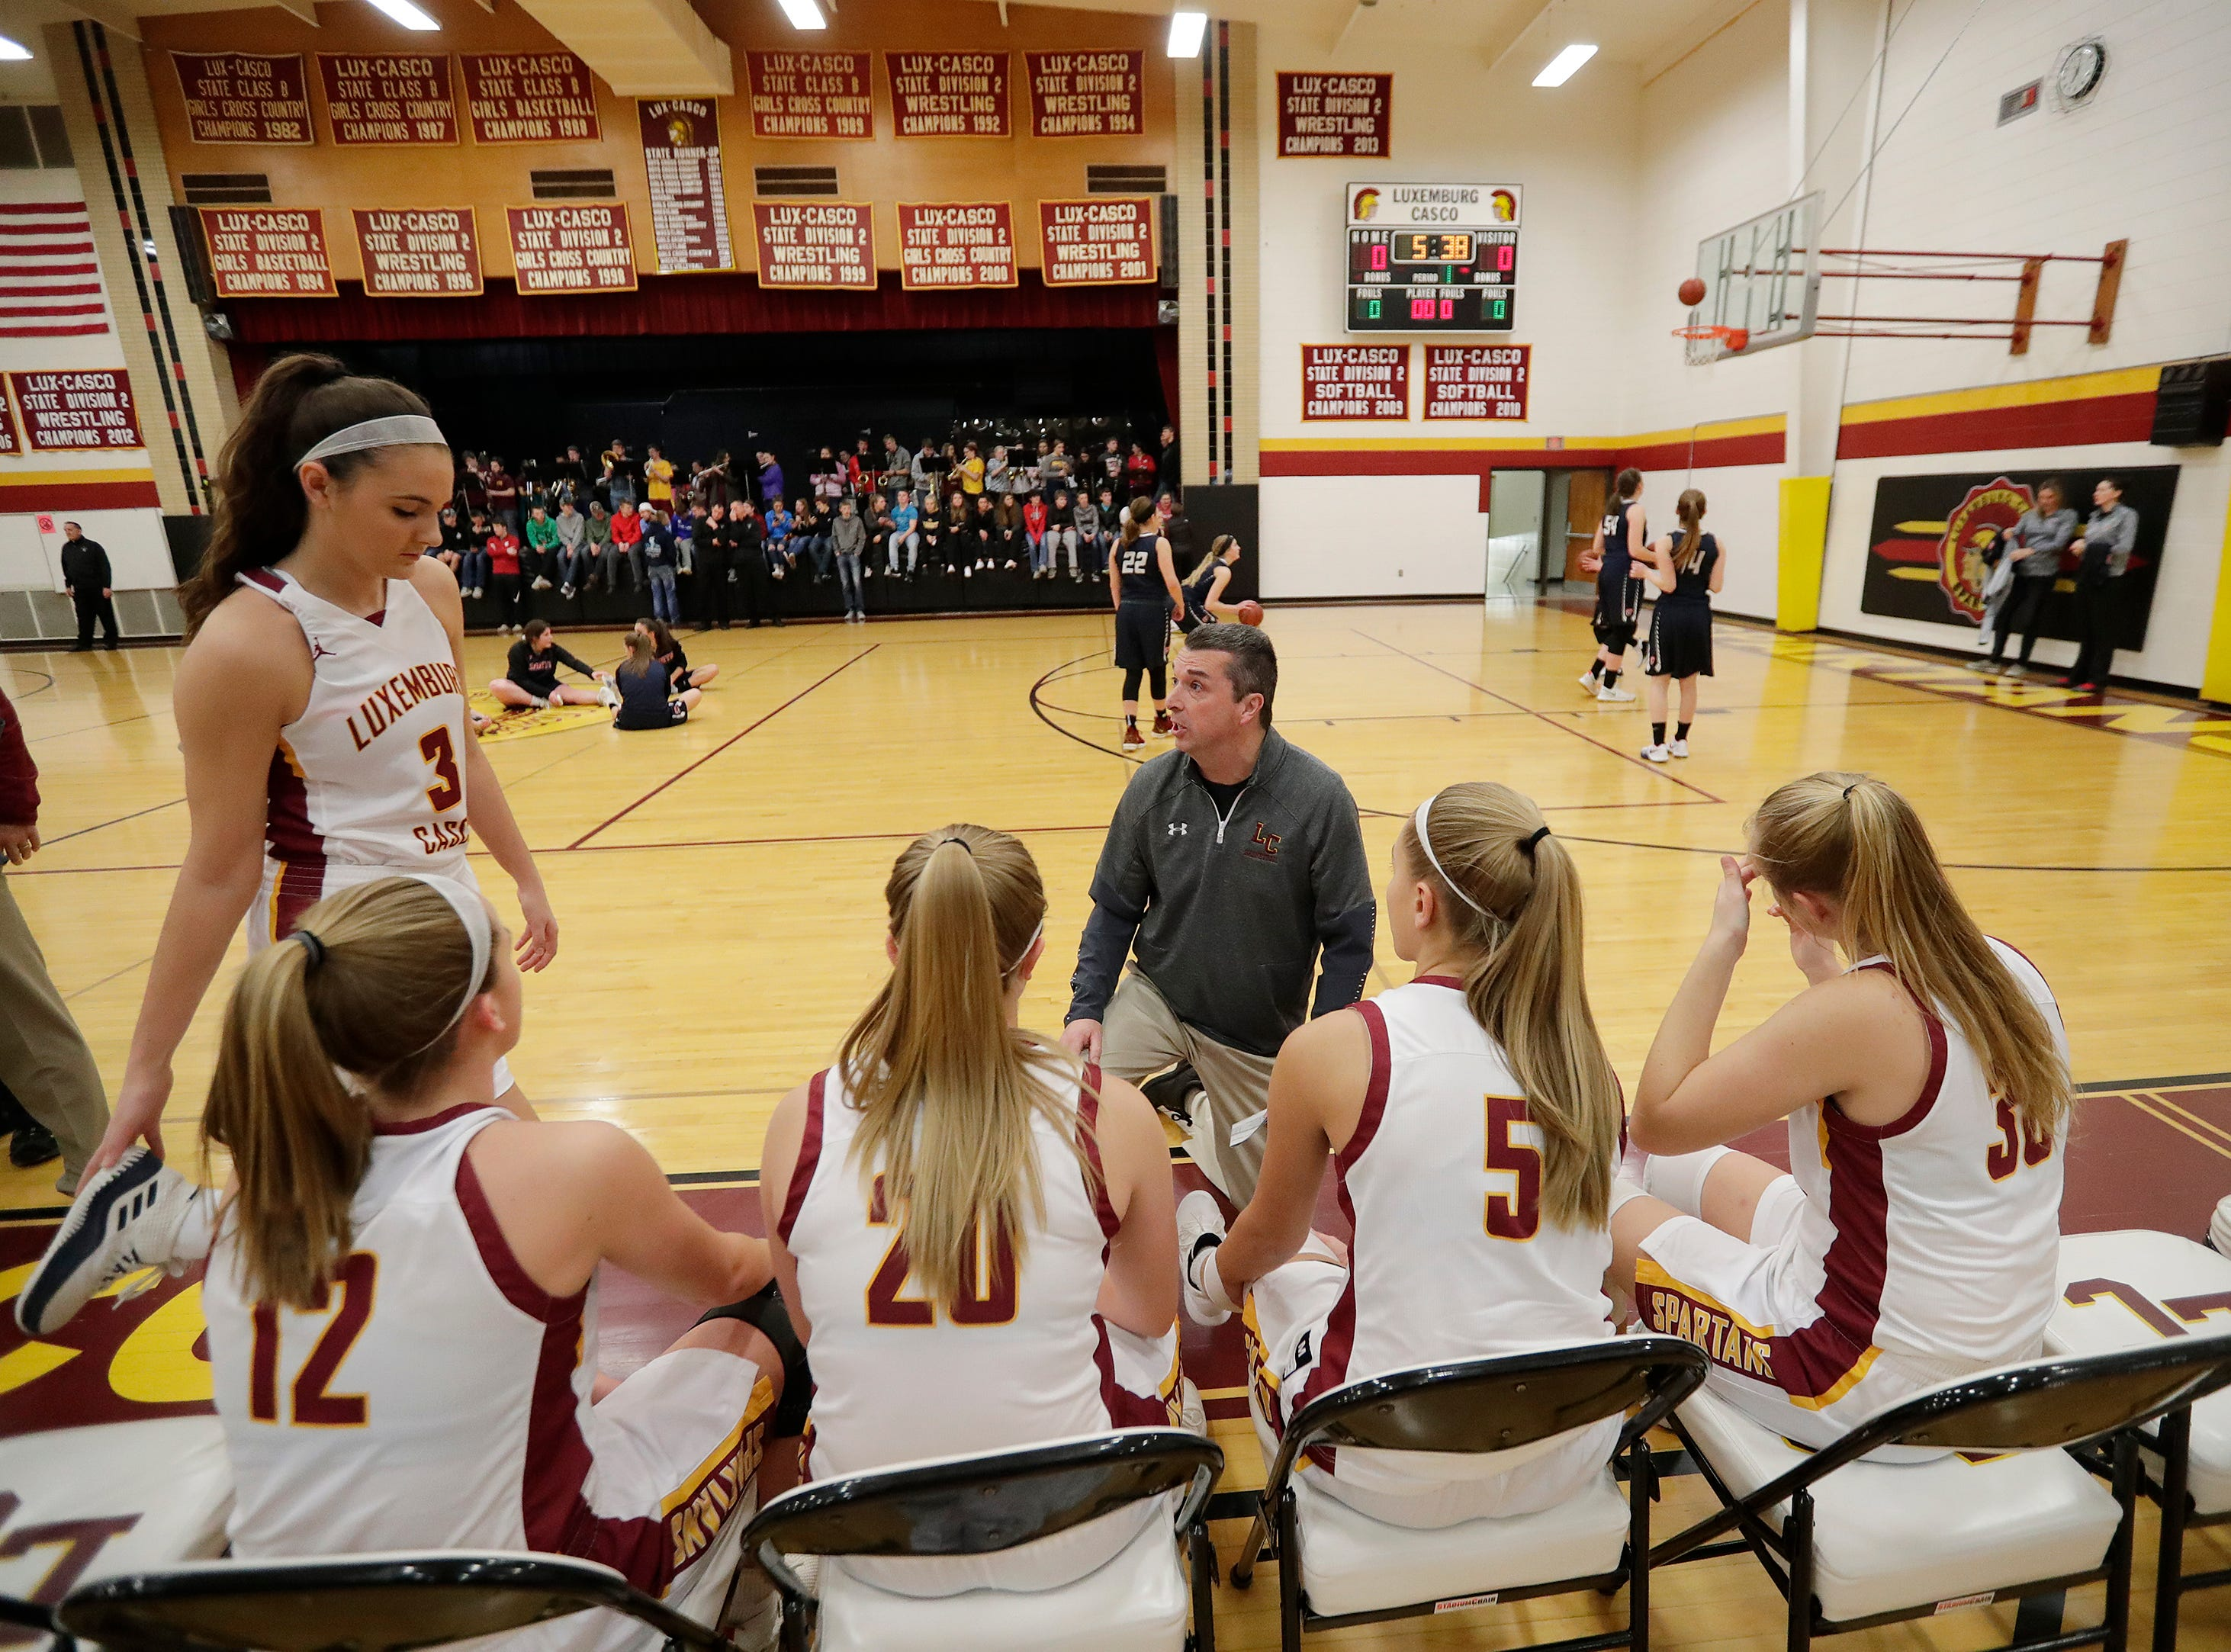 Luxemburg-Casco head coach Jeff Jodar talks to Cassie Schiltz (3) before a game against Waupaca at Luxemburg-Casco high school on Thursday, January 10, 2019 in Luxemburg, Wis.